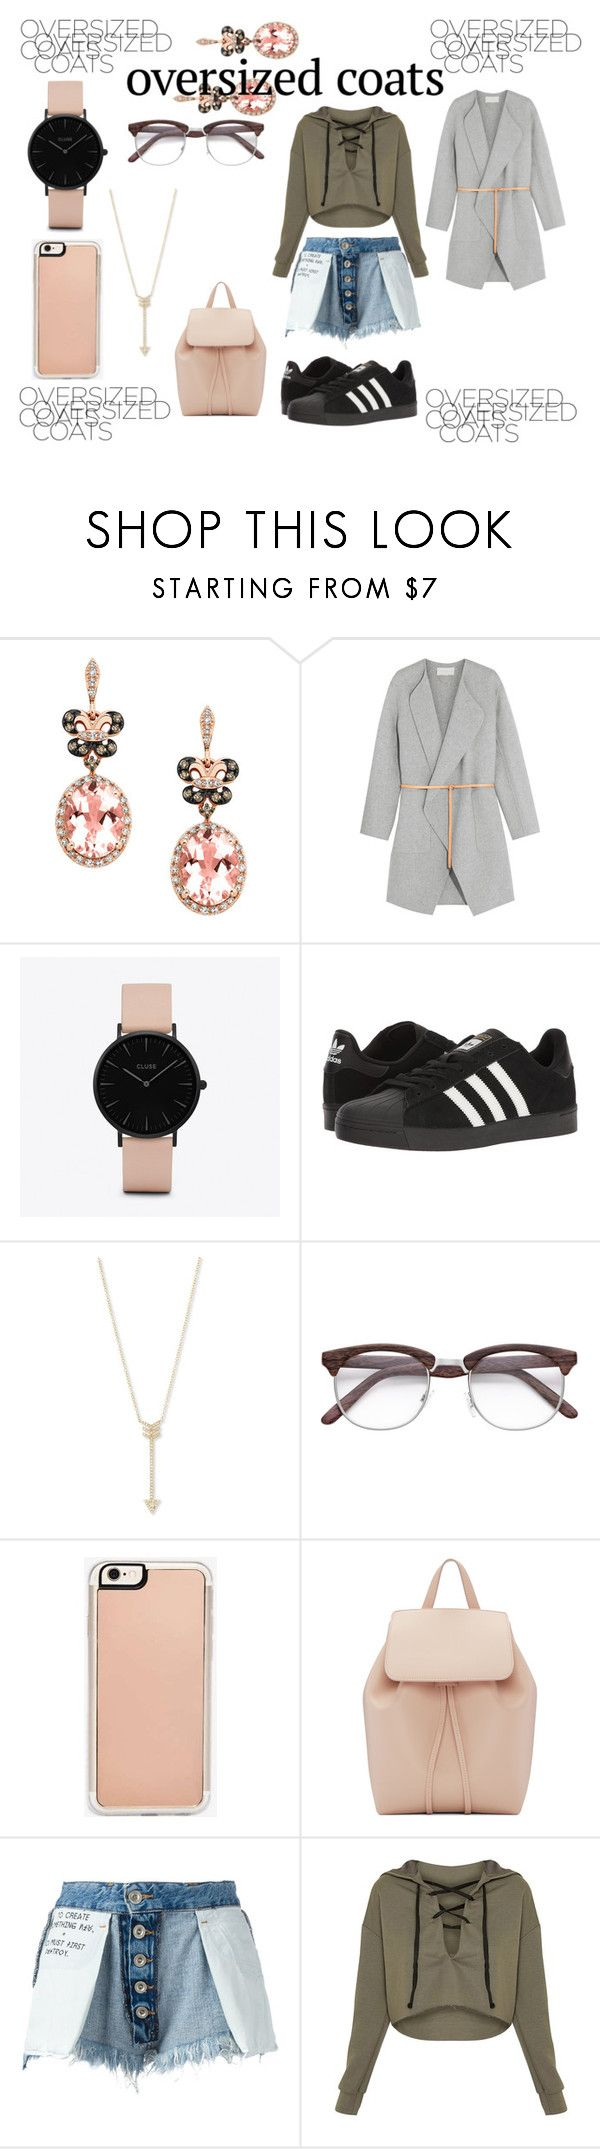 """It's Grey"" by starangel20 ❤ liked on Polyvore featuring Effy Jewelry, Vanessa Bruno, CLUSE, adidas, EF Collection, Zero Gravity, Mansur Gavriel and Unravel"